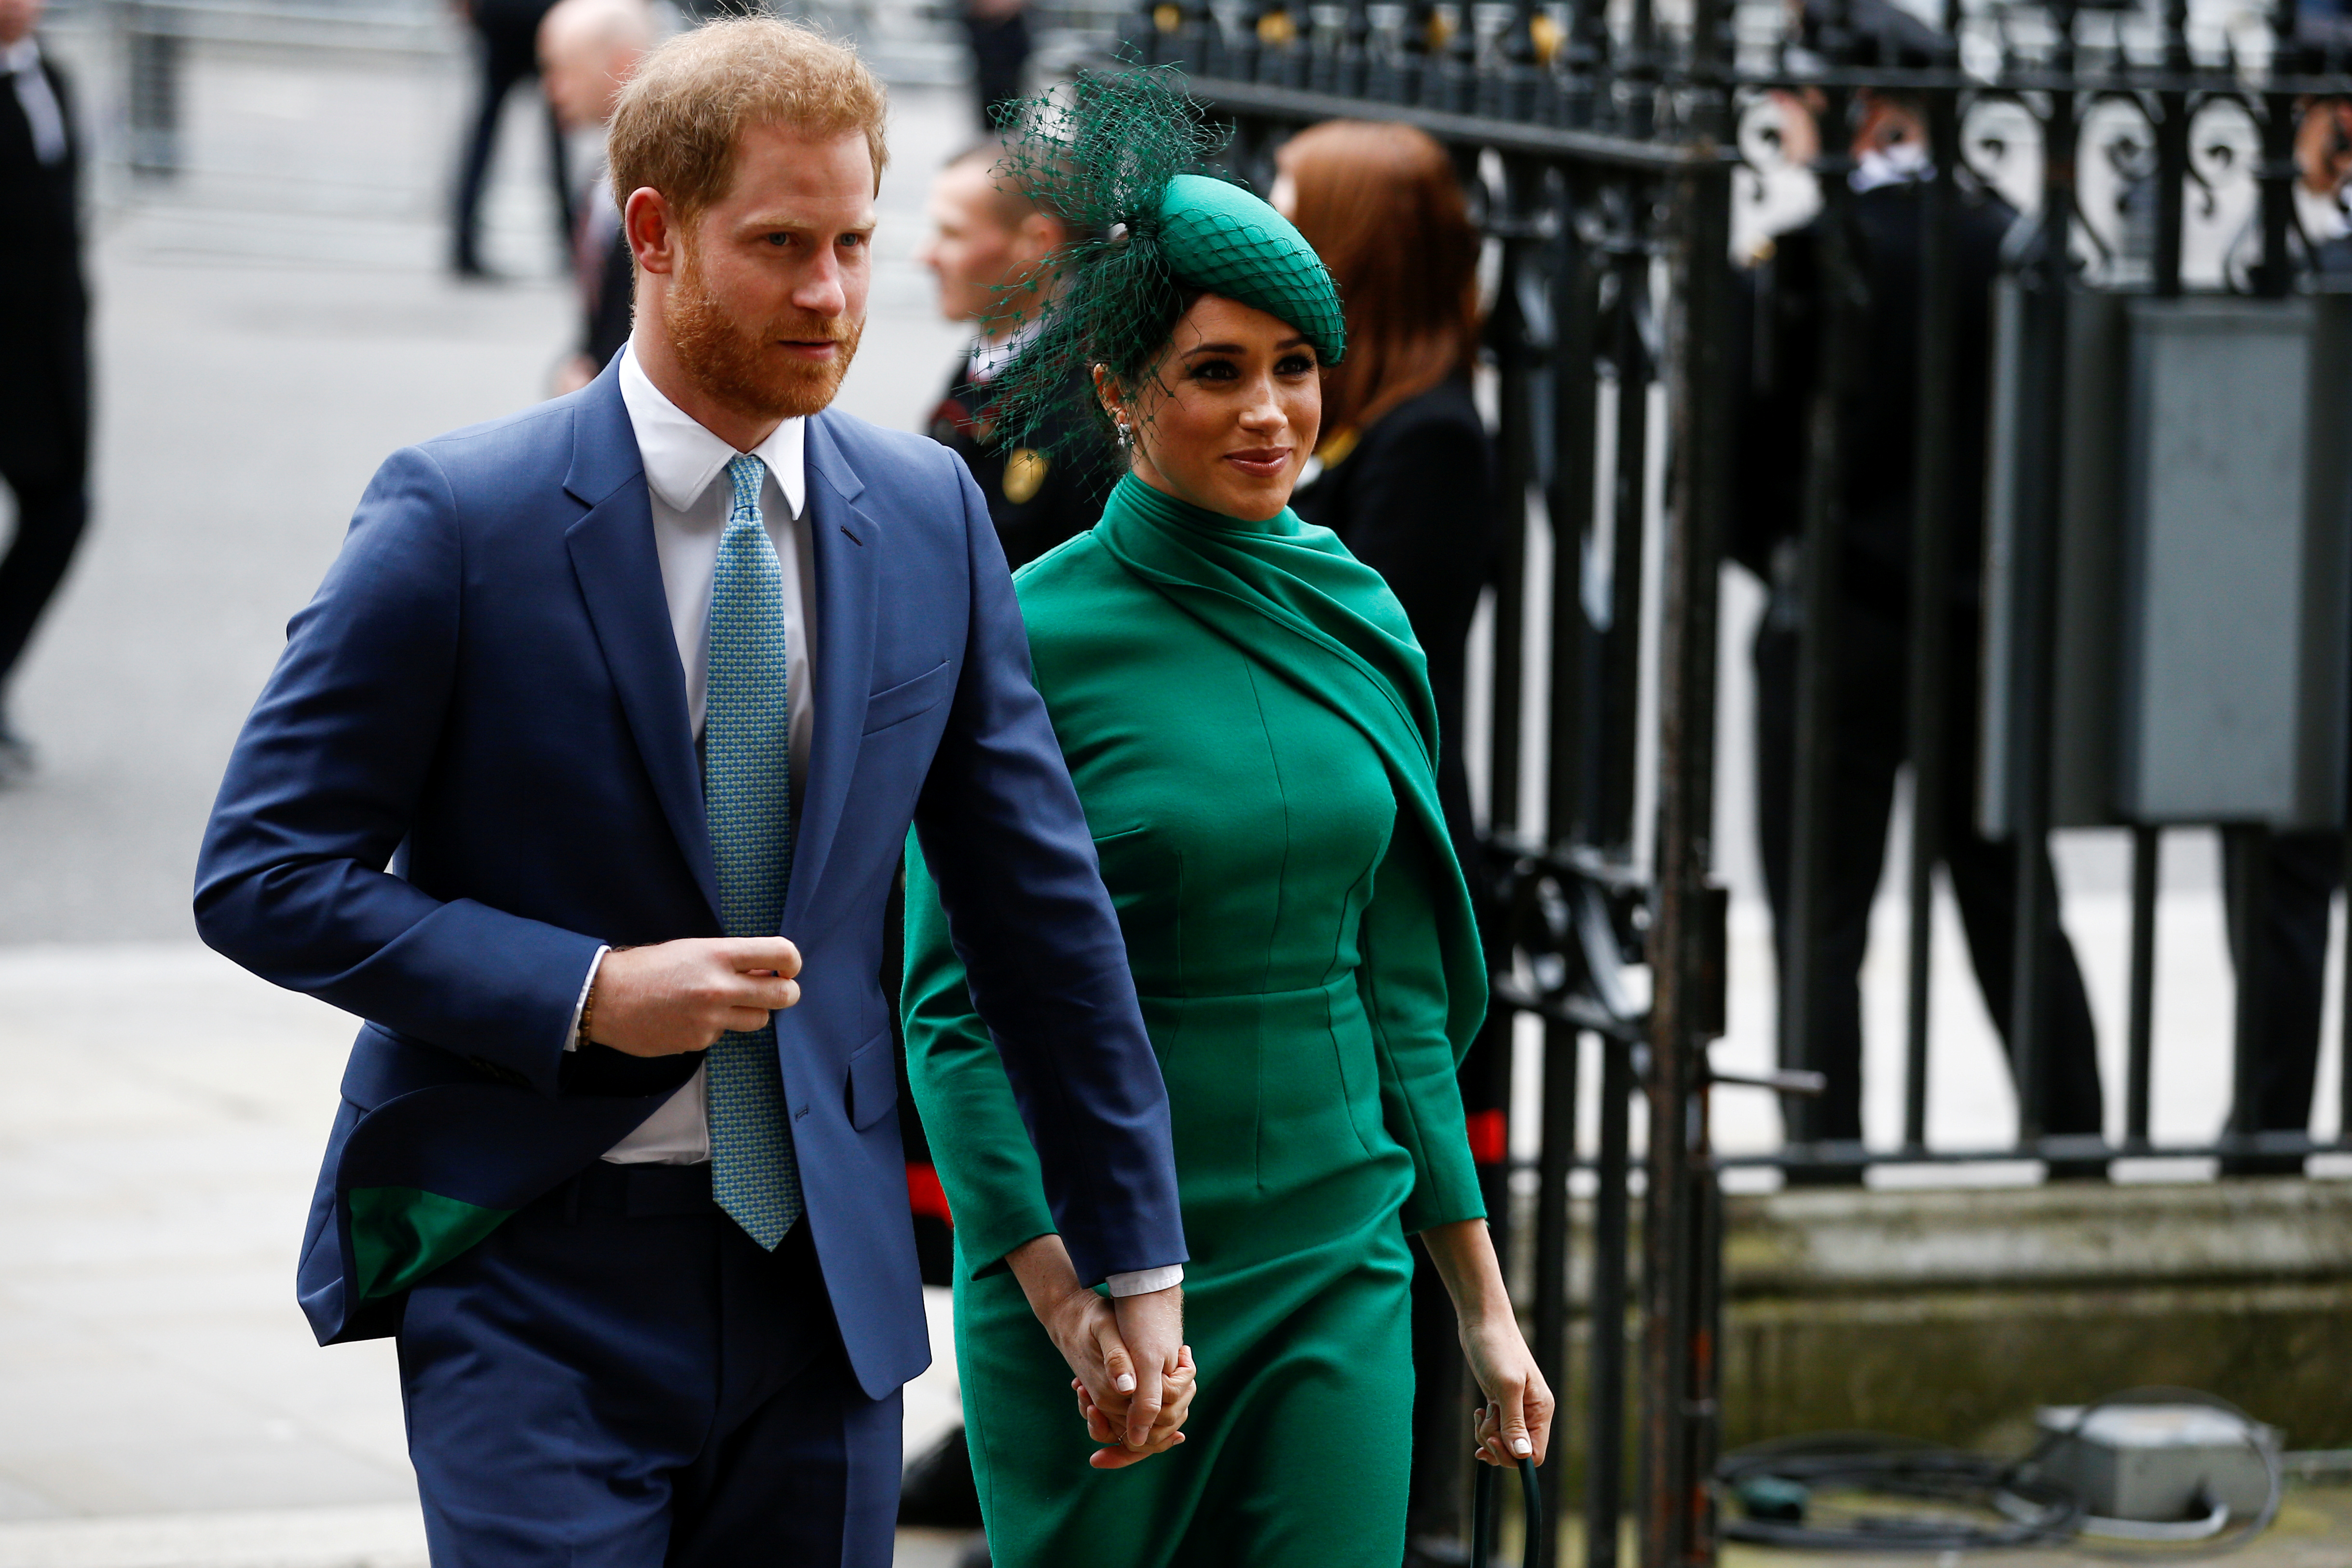 FILE PHOTO: Britain's Prince Harry and Meghan, Duchess of Sussex, arrive for the annual Commonwealth Service at Westminster Abbey in London, Britain March 9, 2020. REUTERS/Henry Nicholls/File Photo -